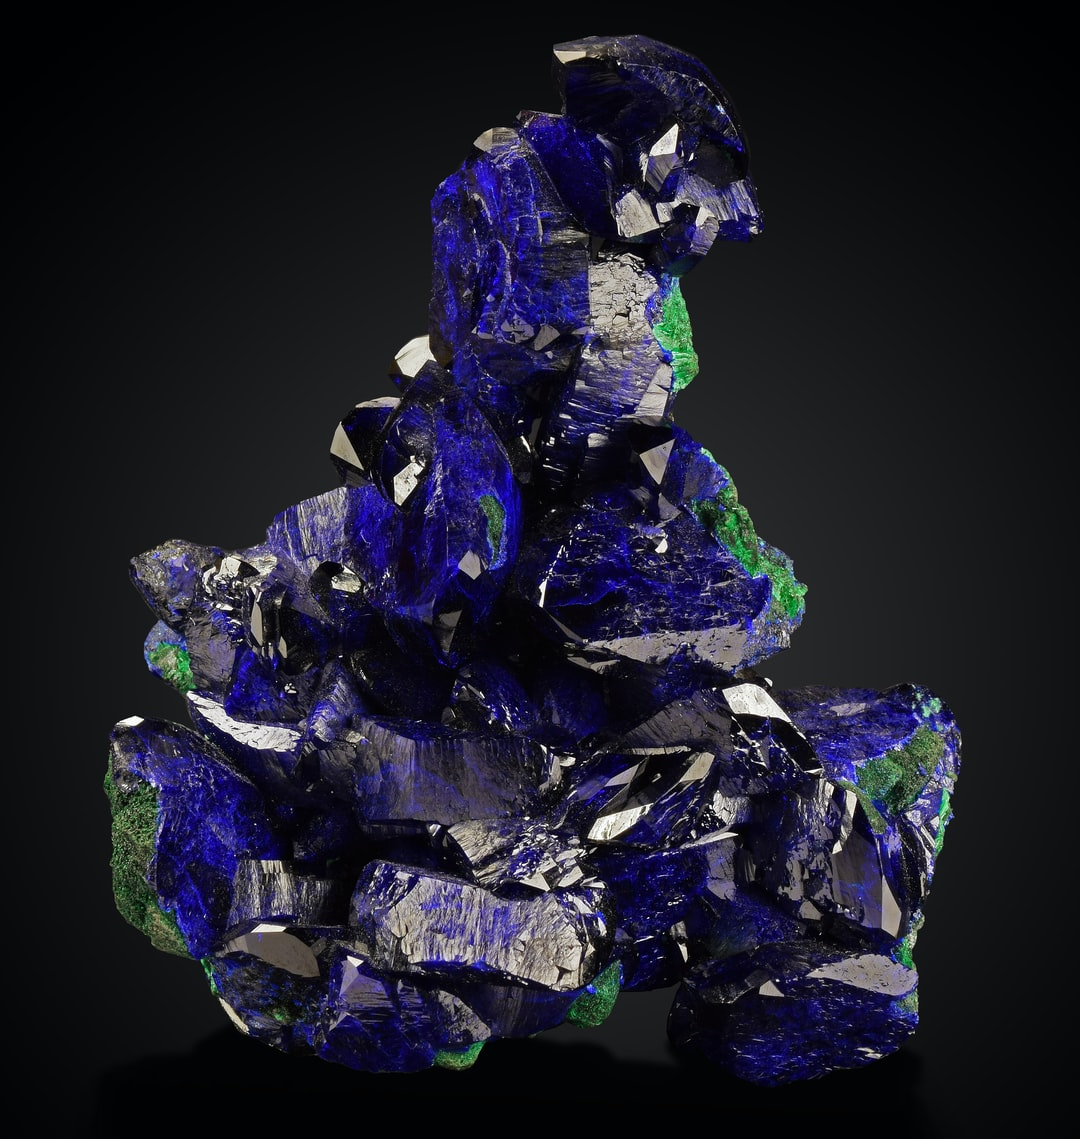 A sample of azurite, the blue mineral, and malachite, the green mineral. Both azurite and malachite are copper minerals that were once used as pigments but are now mostly valued as collectors minerals.